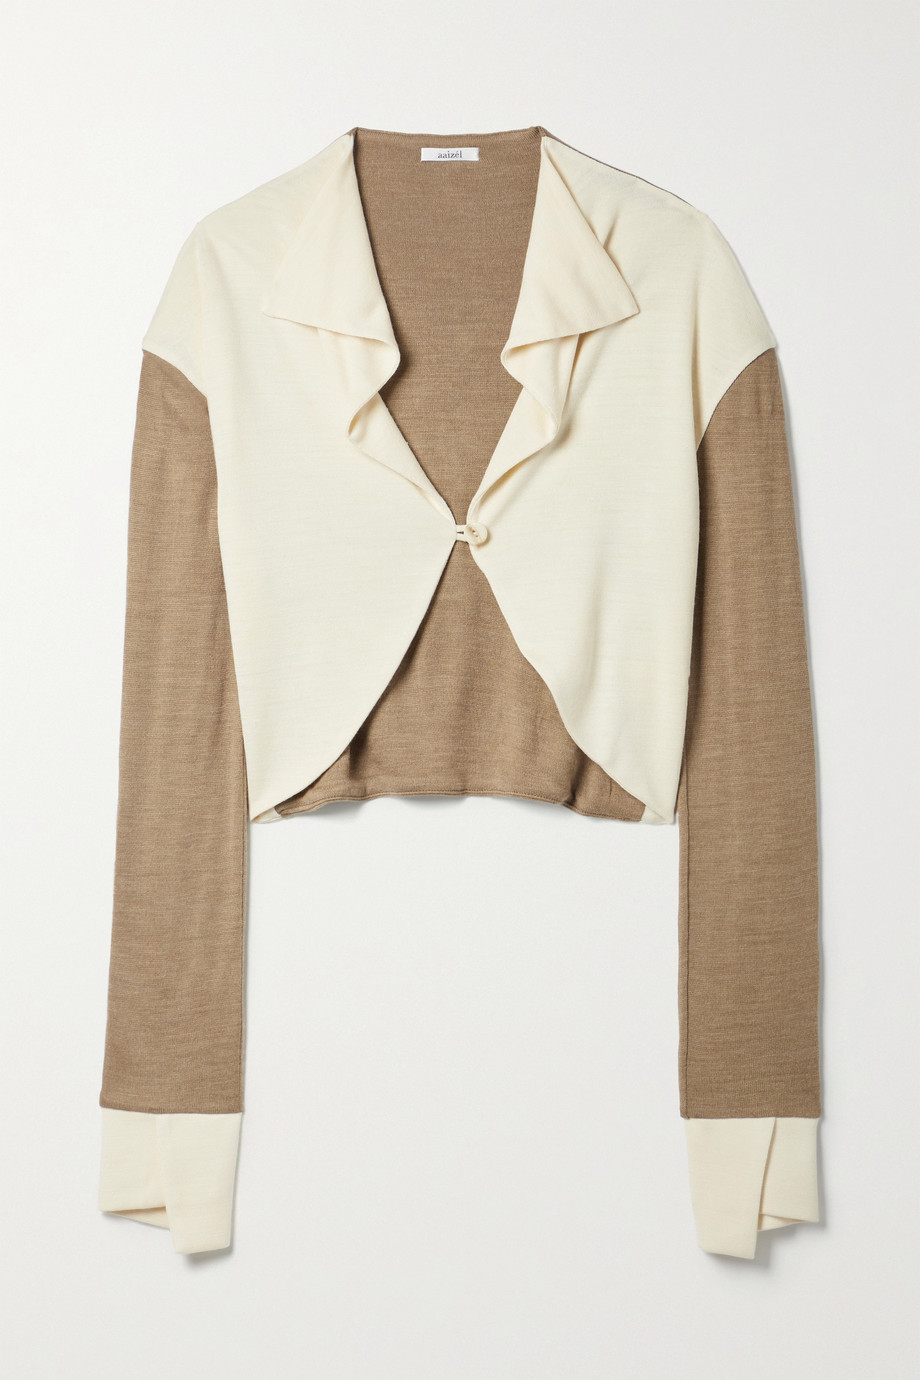 aaizél + NET SUSTAIN cropped two-tone knitted cardigan